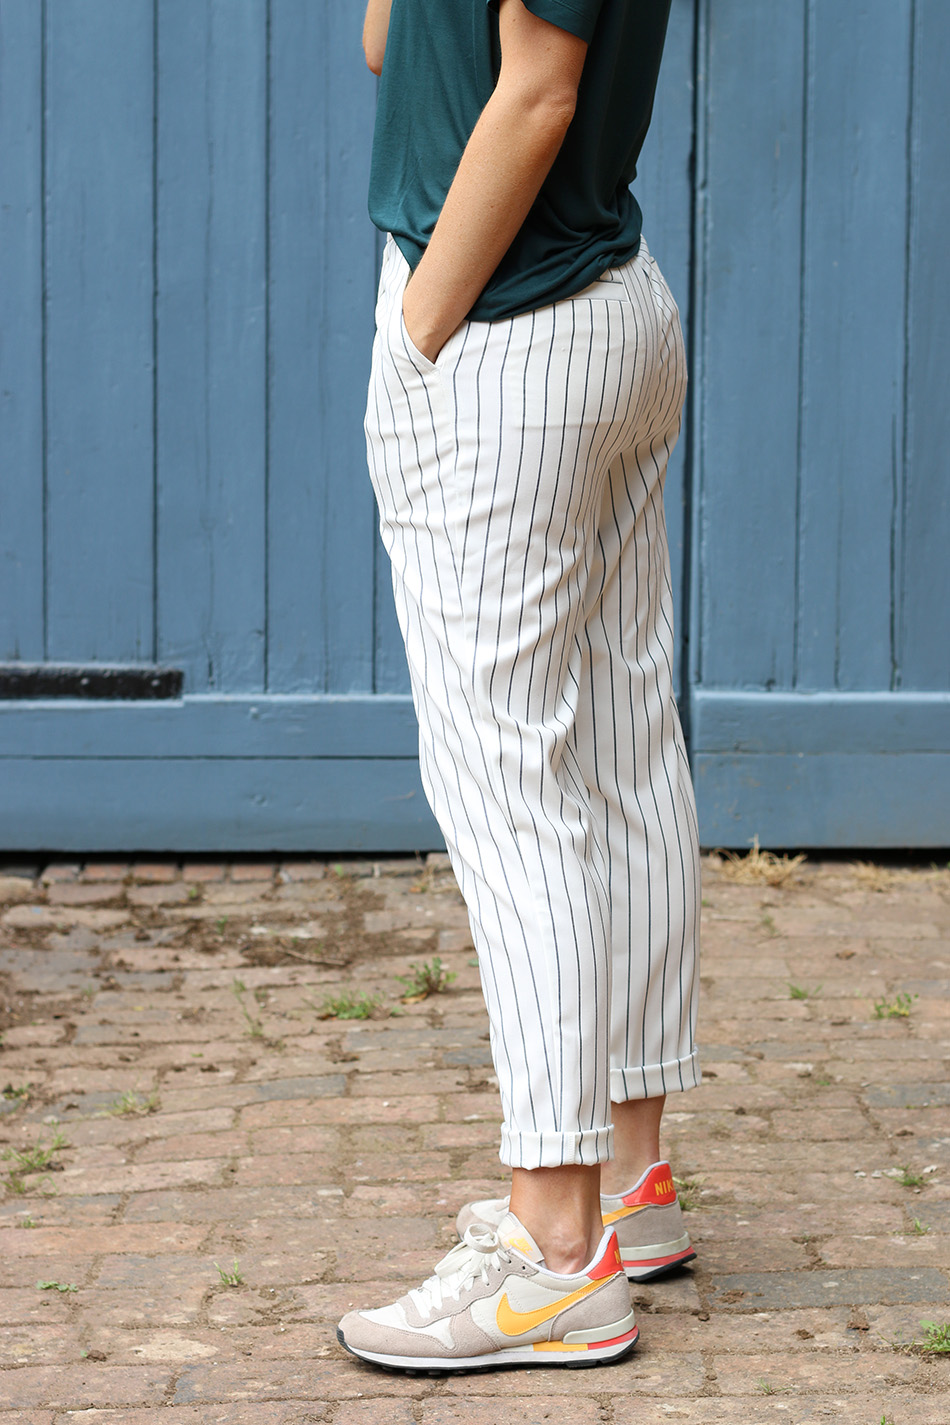 Fringe and Doll Striped trousers IMG_6996